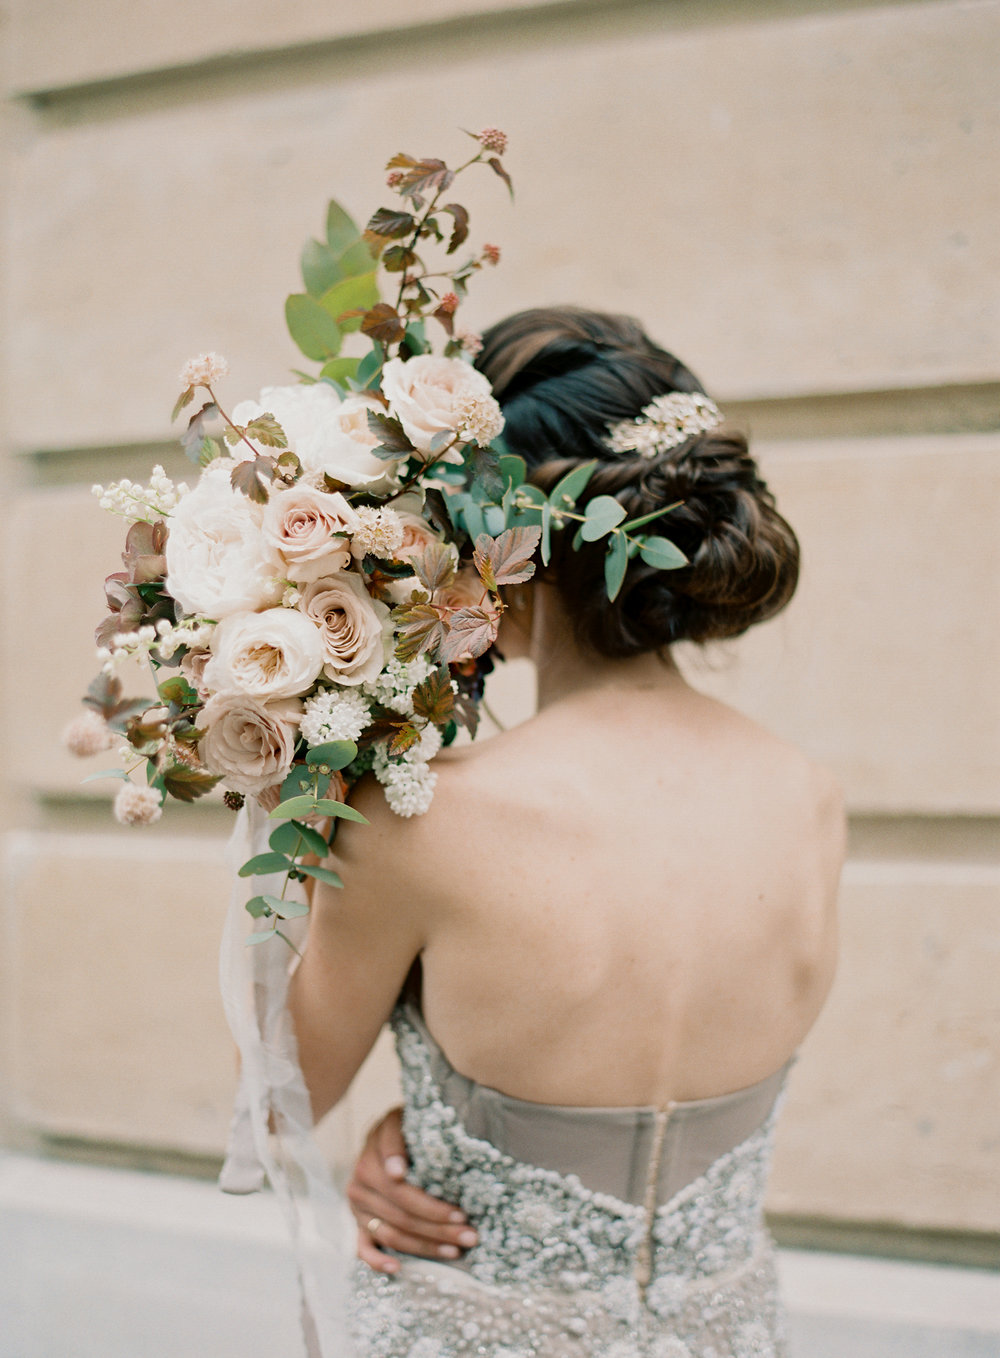 Paris-France-Film-Wedding-Carrie King Photographer-99.jpg